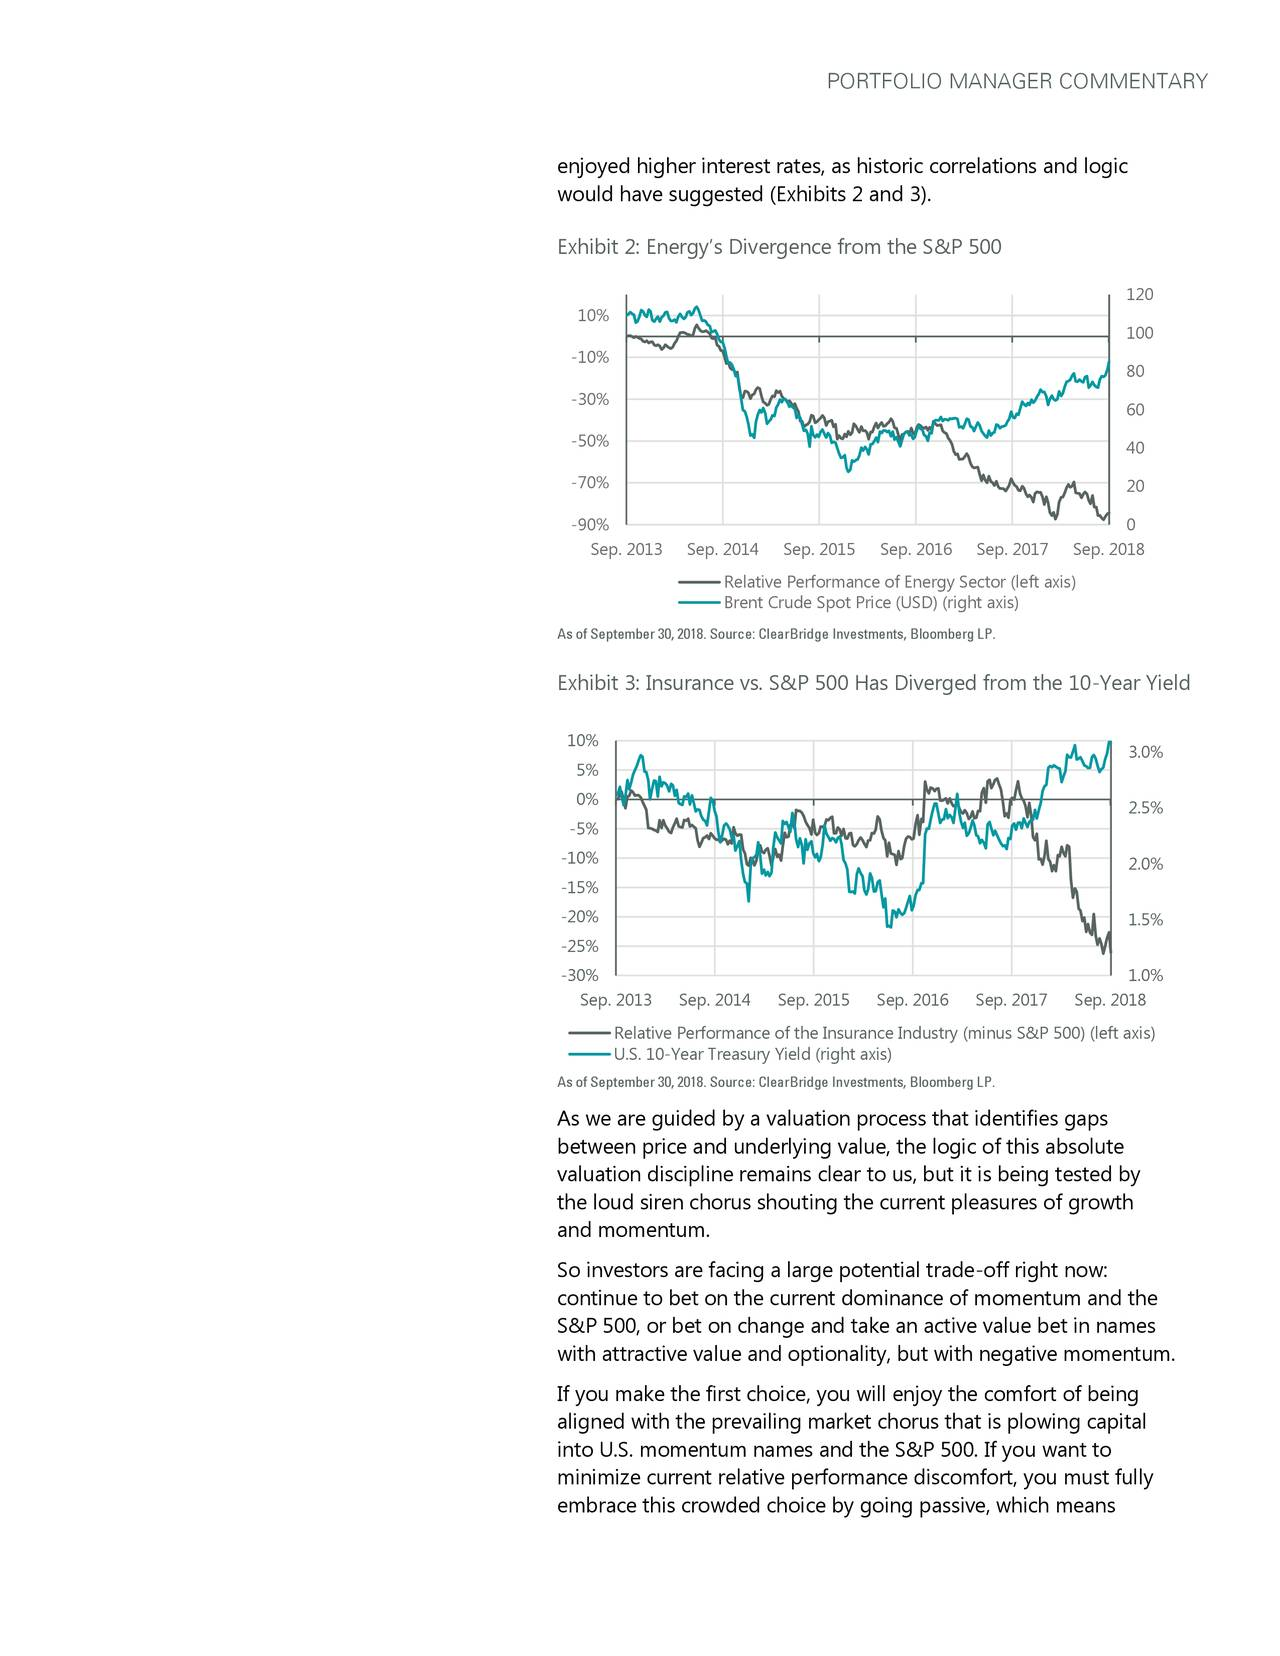 enjoyed higher interest rates, as historic correlations and logic would have suggested (Exhibits 2 and 3). Exhibit 2: Energy's Divergence from the S&P 500 120 10% 100 -10% 80 -30% 60 -50% 40 -70% 20 -90% 0 Sep. 2013 Sep. 2014 Sep. 2015 Sep. 2016 Sep. 2017 Sep. 2018 Relative Performance of Energy Sector (left axis) Brent Crude Spot Price (USD) (right axis) As of September 30, 2018. Source: ClearBridge Investments, Bloomberg LP. Exhibit 3: Insurance vs. S&P 500 Has Diverged from the 10-Year Yield 10% 3.0% 5% 0% 2.5% -5% -10% 2.0% -15% -20% 1.5% -25% -30% 1.0% Sep. 2013 Sep. 2014 Sep. 2015 Sep. 2016 Sep. 2017 Sep. 2018 Relative Performance of the Insurance Industry (minus S&P 500) (left axis) U.S. 10-Year Treasury Yield (right axis) As of September 30, 2018. Source: ClearBridge Investments, Bloomberg LP. As we are guided by a valuation process that identifies gaps between price and underlying value, the logic of this absolute valuation discipline remains clear to us, but it is being tested by the loud siren chorus shouting the current pleasures of growth and momentum. So investors are facing a large potential trade-off right now: continue to bet on the current dominance of momentum and the S&P 500, or bet on change and take an active value bet in names with attractive value and optionality, but with negative momentum. If you make the first choice, you will enjoy the comfort of being aligned with the prevailing market chorus that is plowing capital into U.S. momentum names and the S&P 500. If you want to minimize current relative performance discomfort, you must fully embrace this crowded choice by going passive, which means